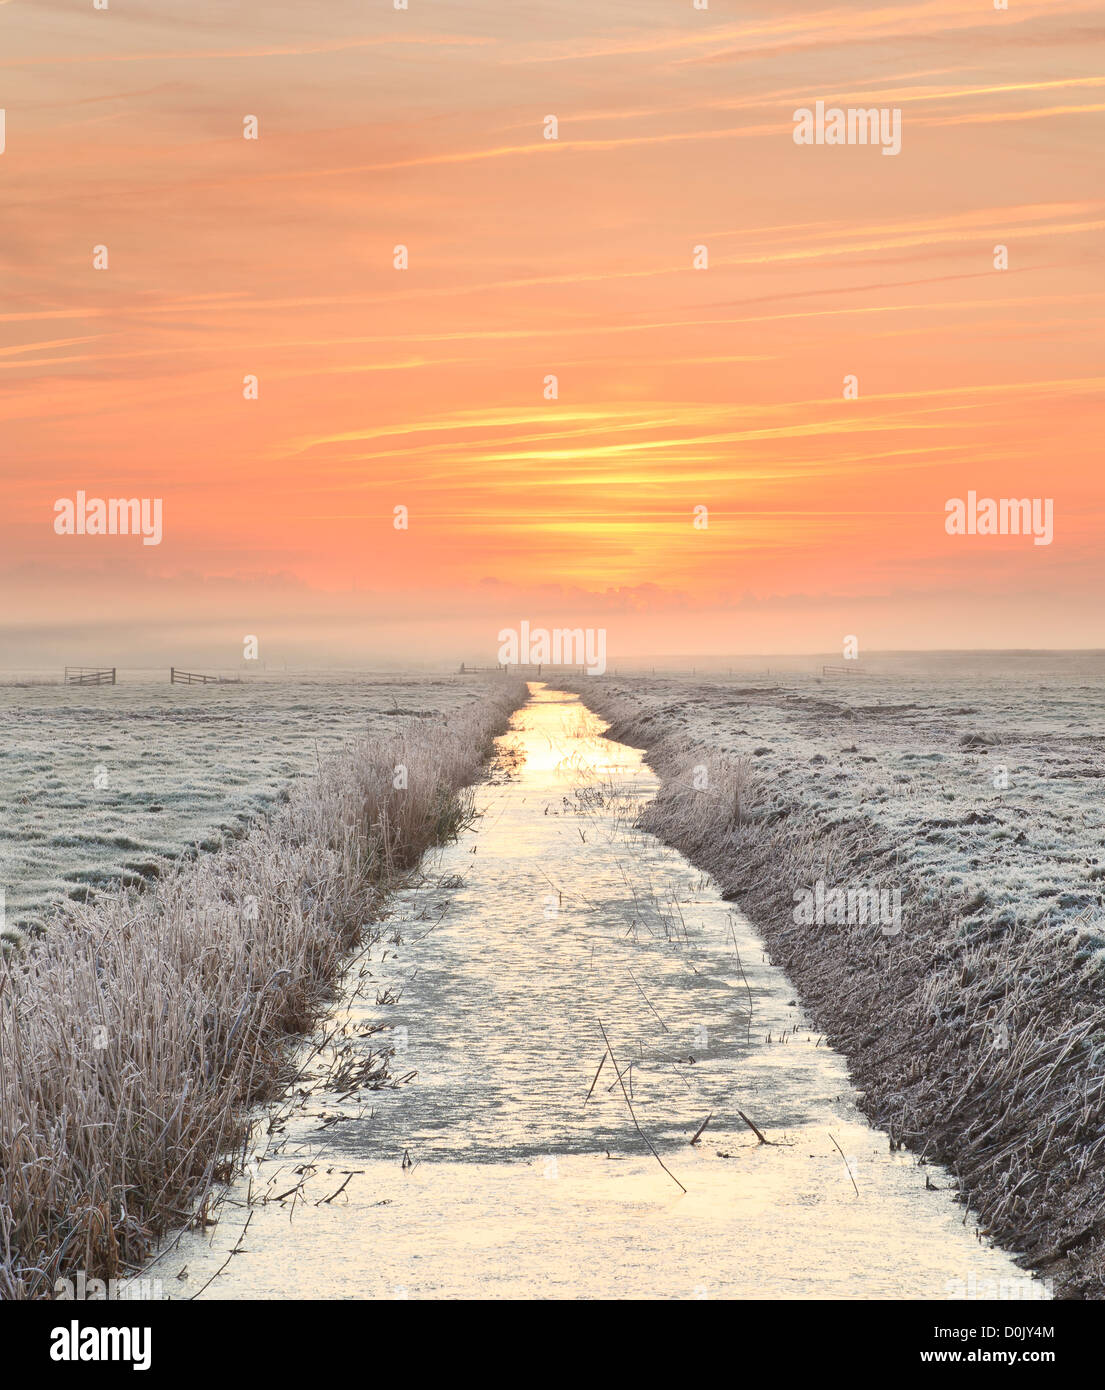 A view along a drainage channel at dawn. - Stock Image